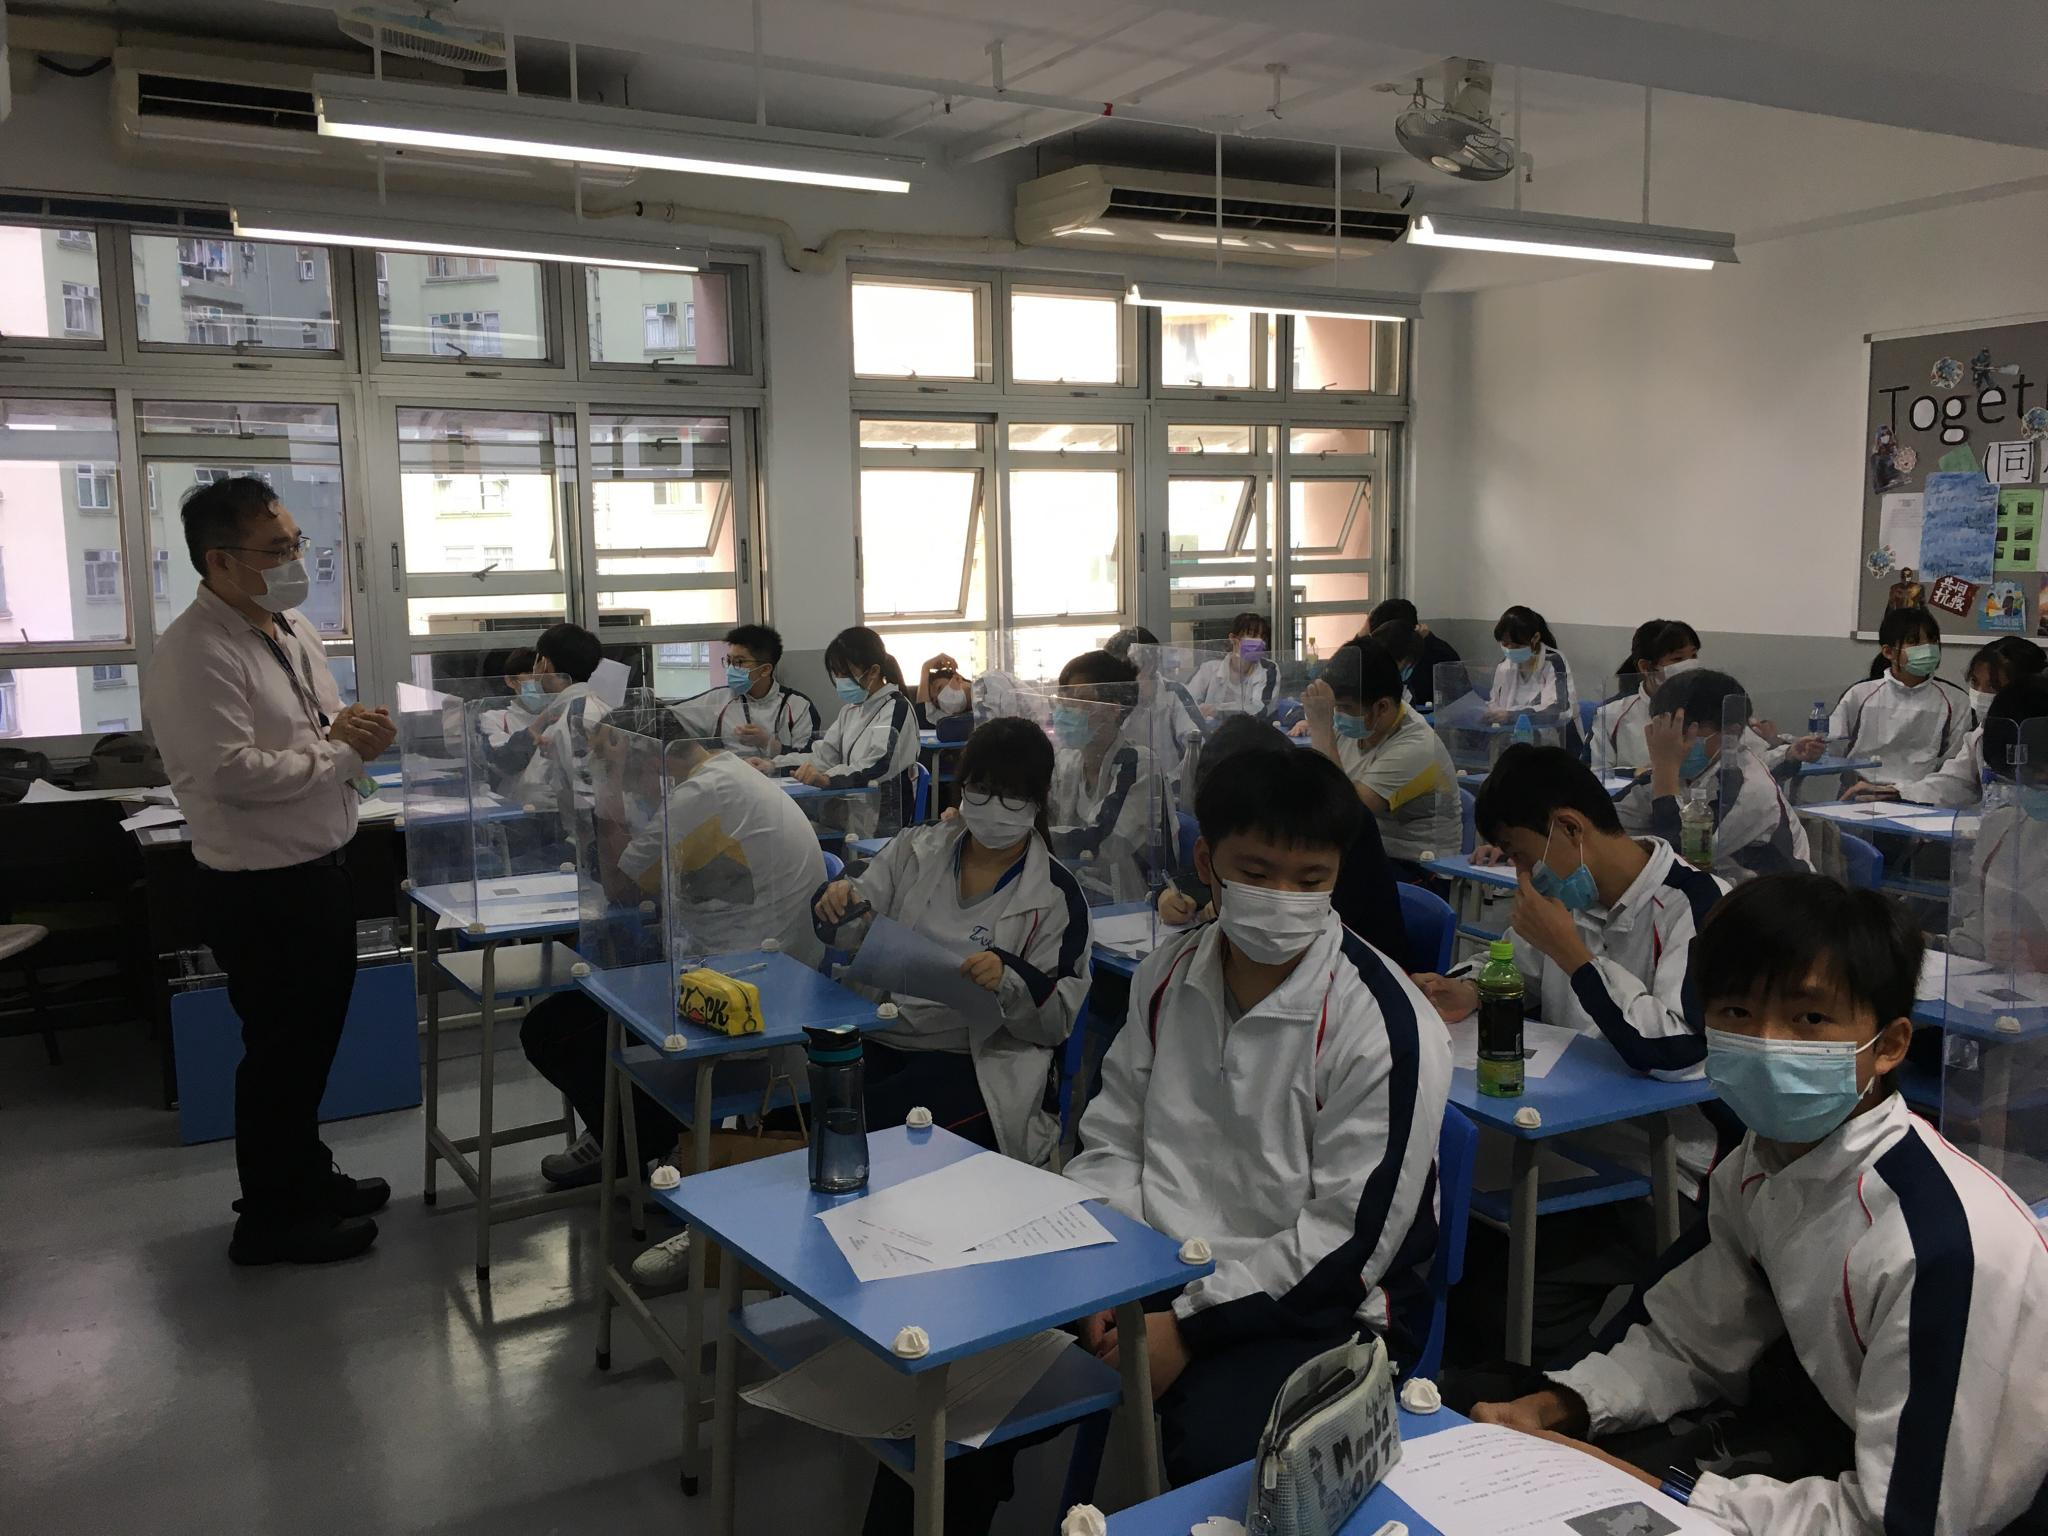 Students were learning about the relief of Lantau Island.